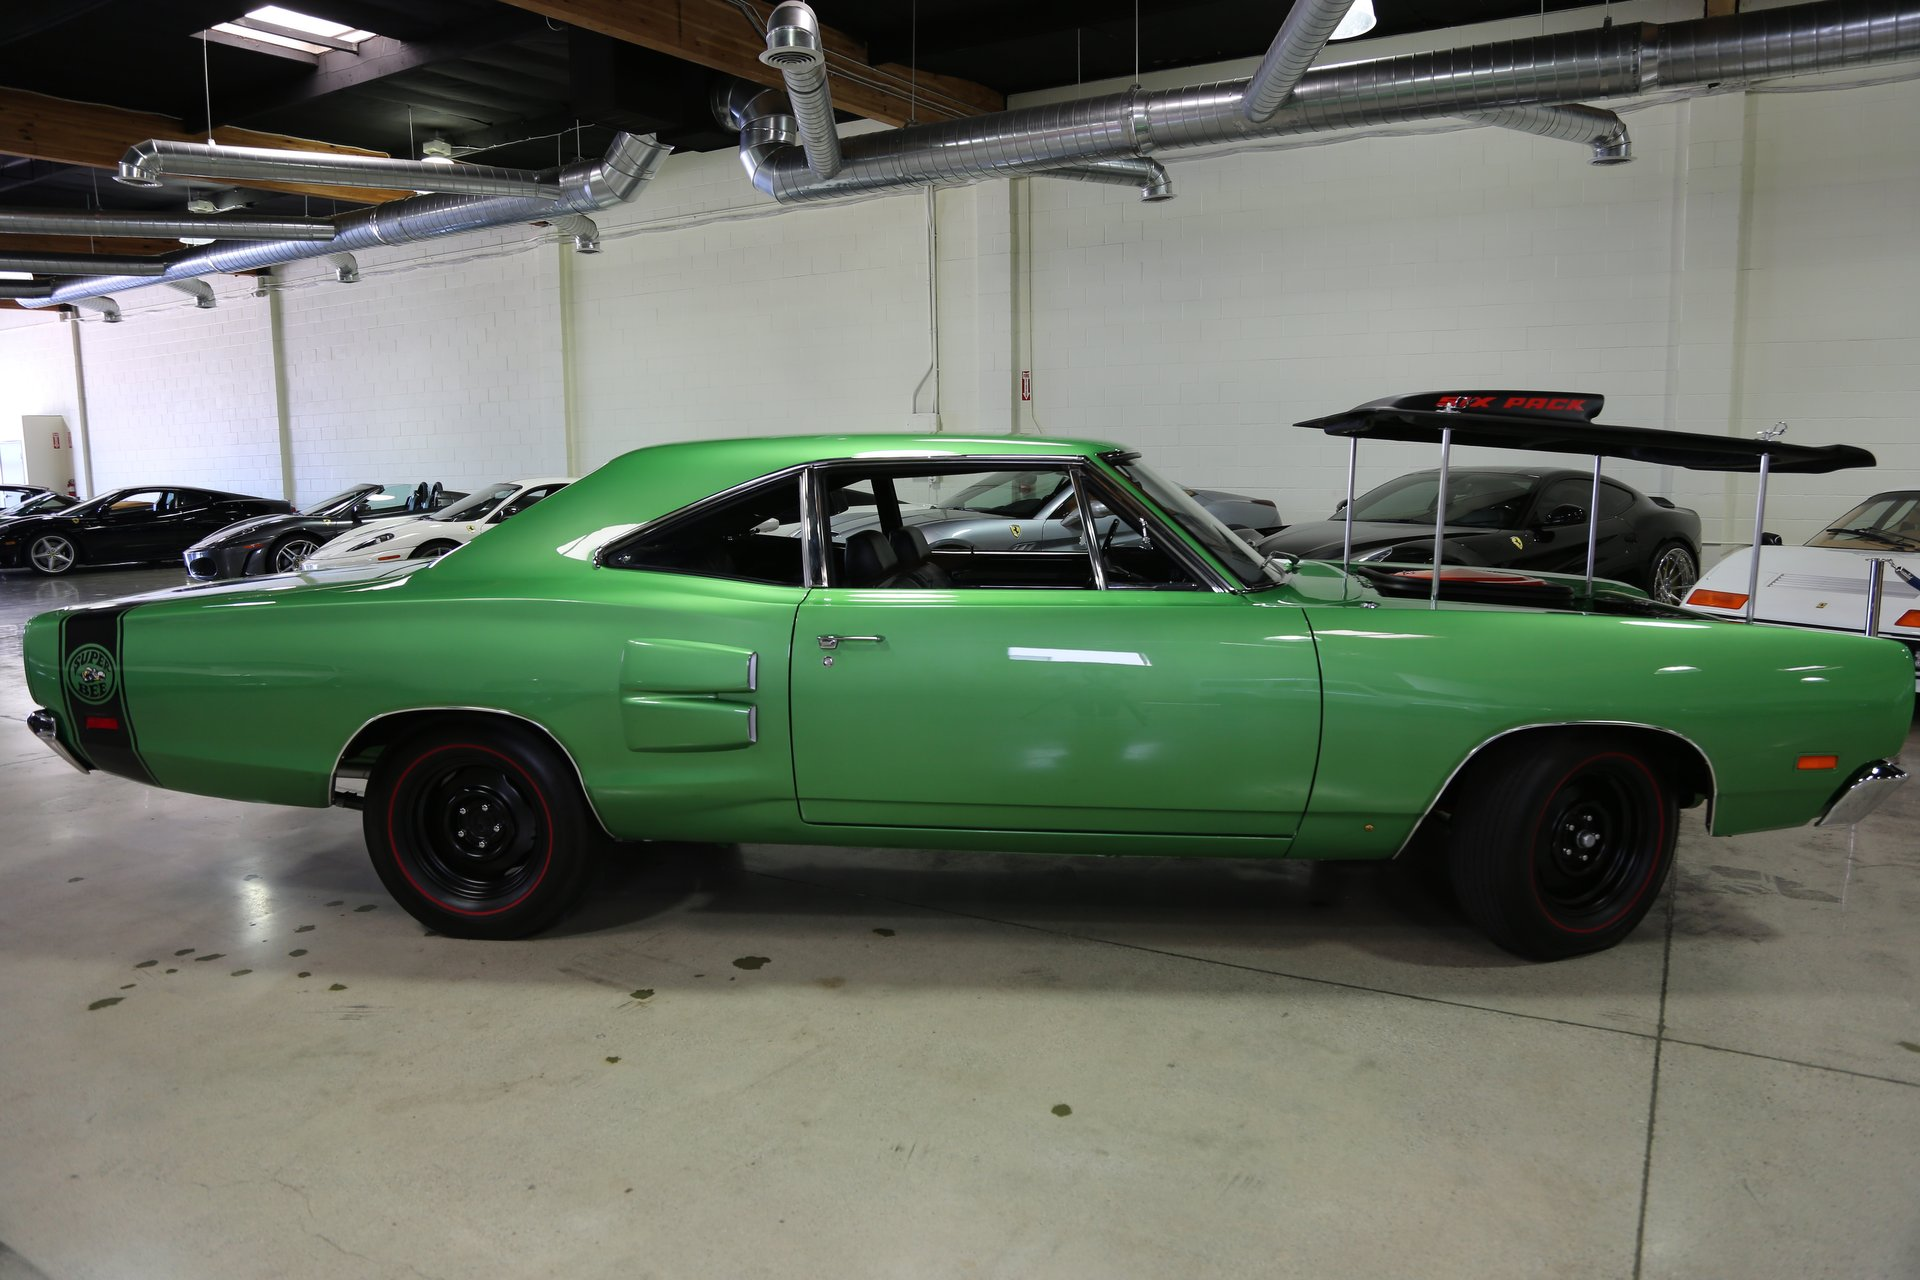 1969 1/2 Dodge A12 Super Bee for sale #95170 | MCG